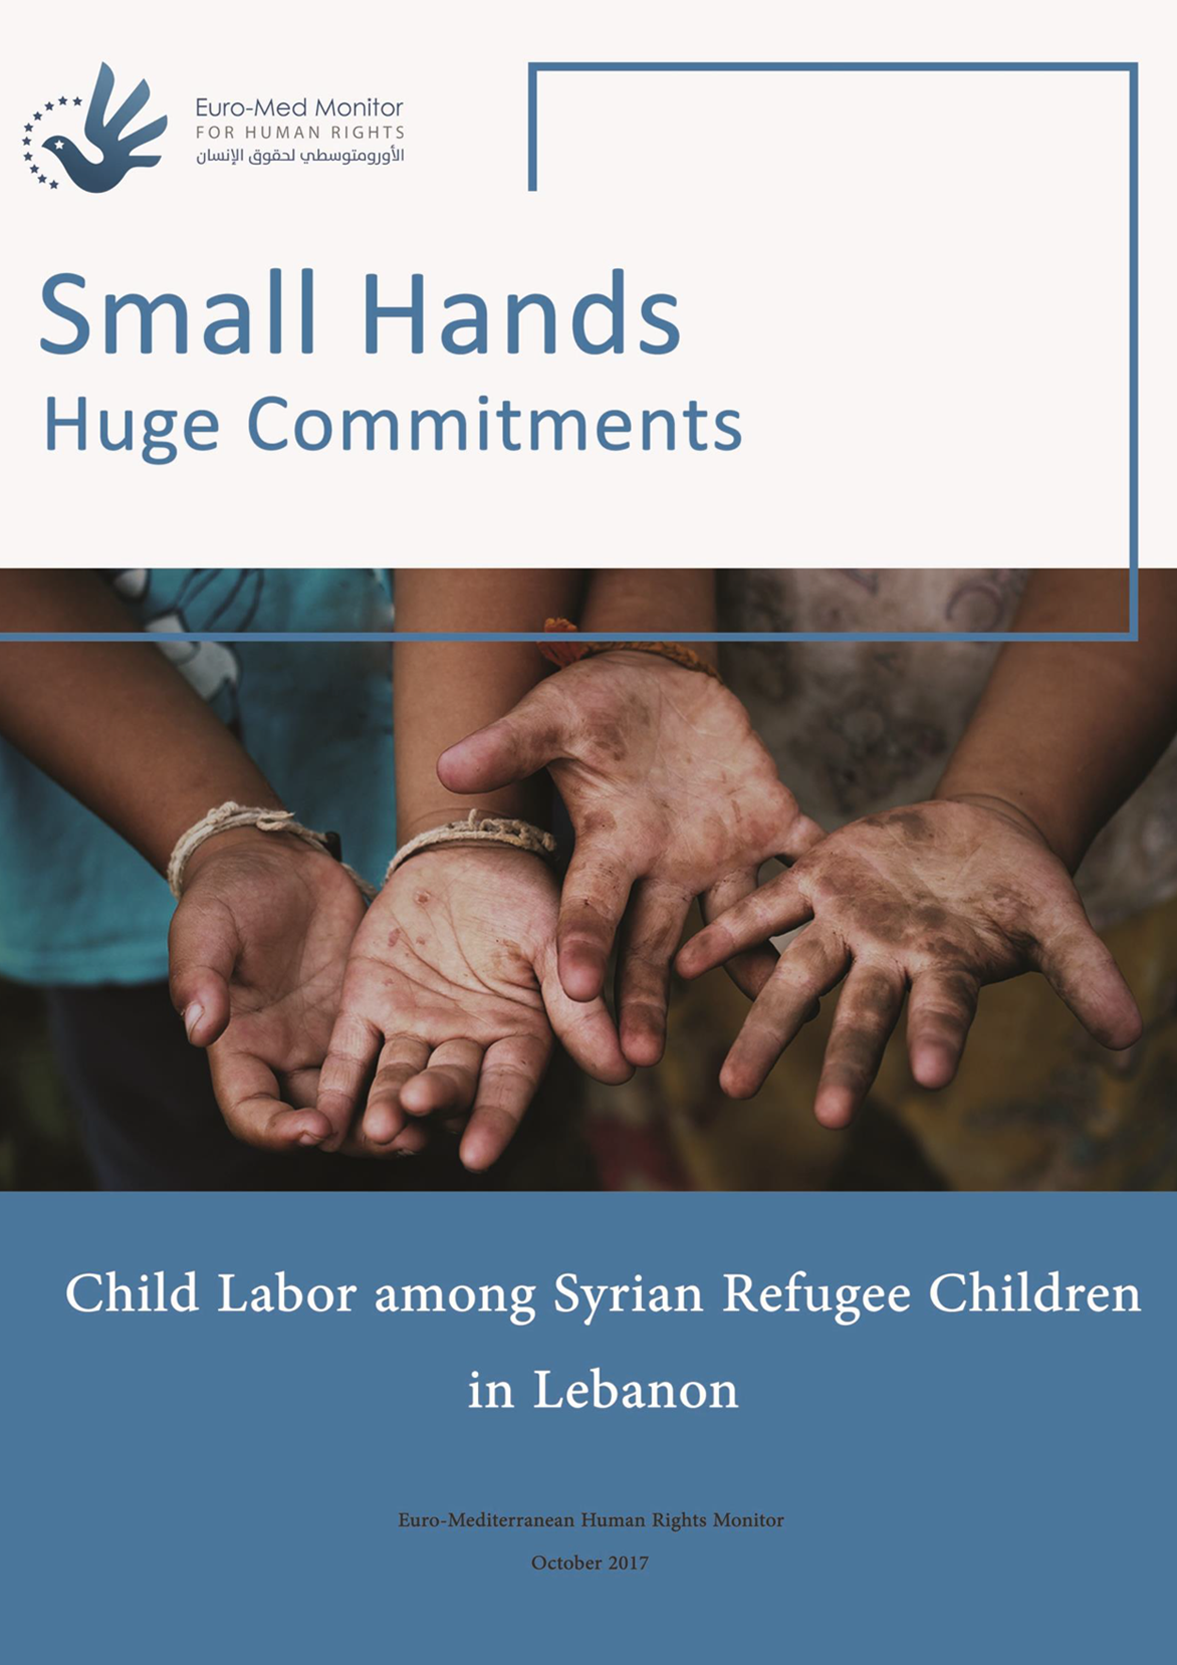 Small hands, enormous commitments: Child labor among Syrian refugee children in Lebanon